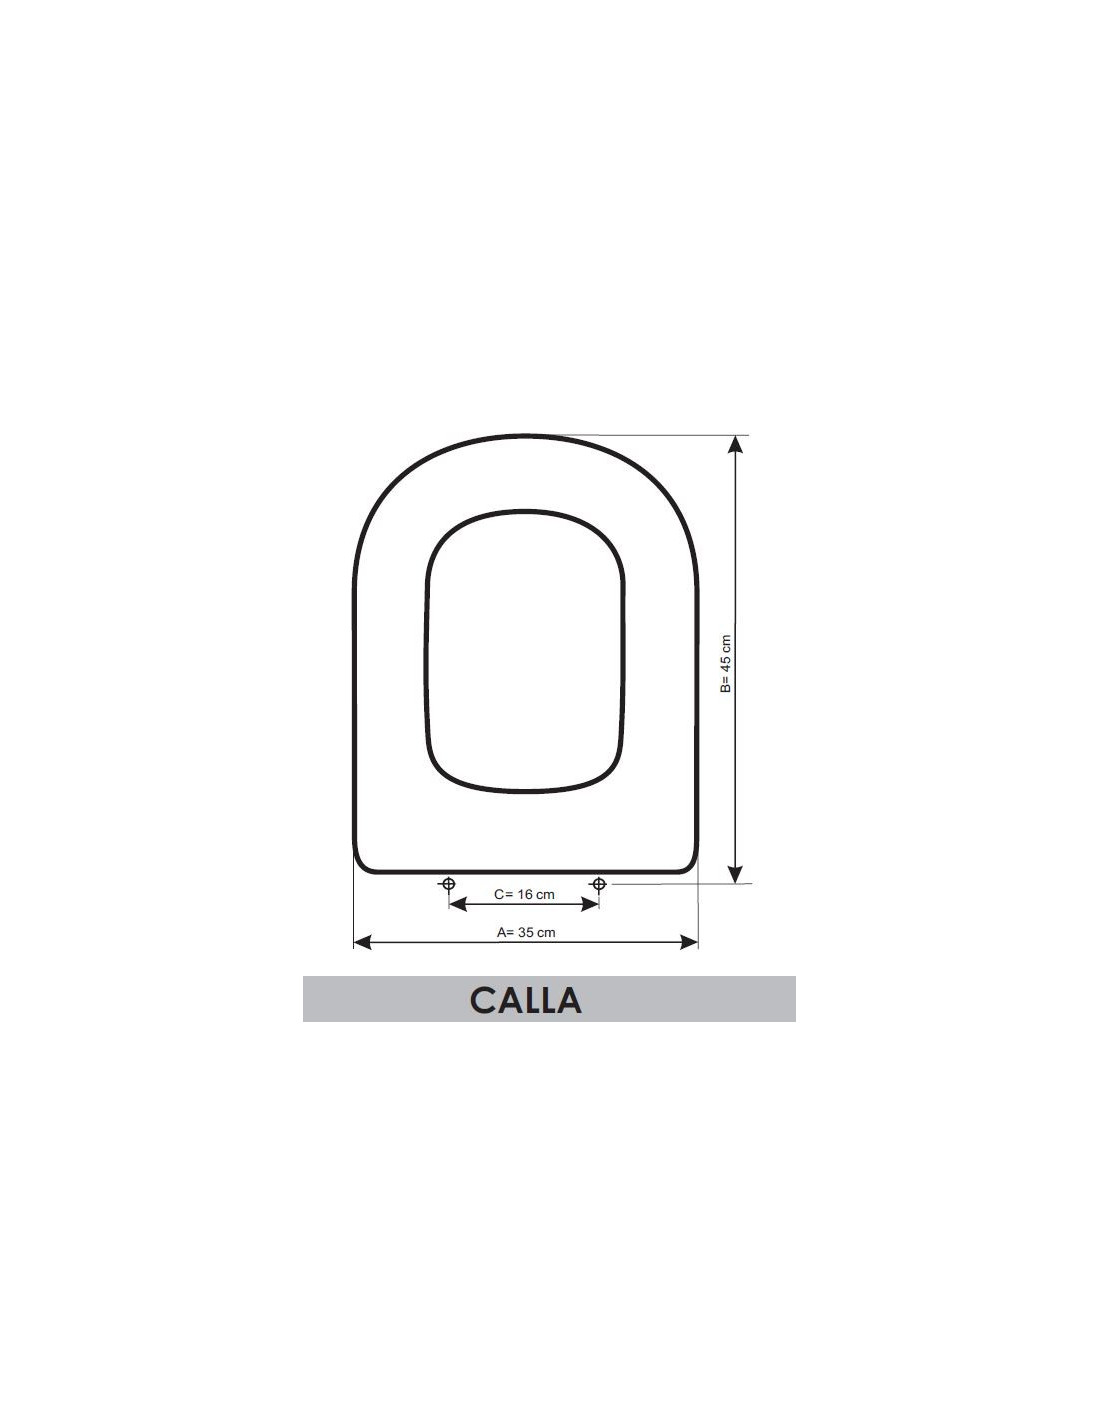 abattant du wc ideal standard calla adaptable in resiwood fr